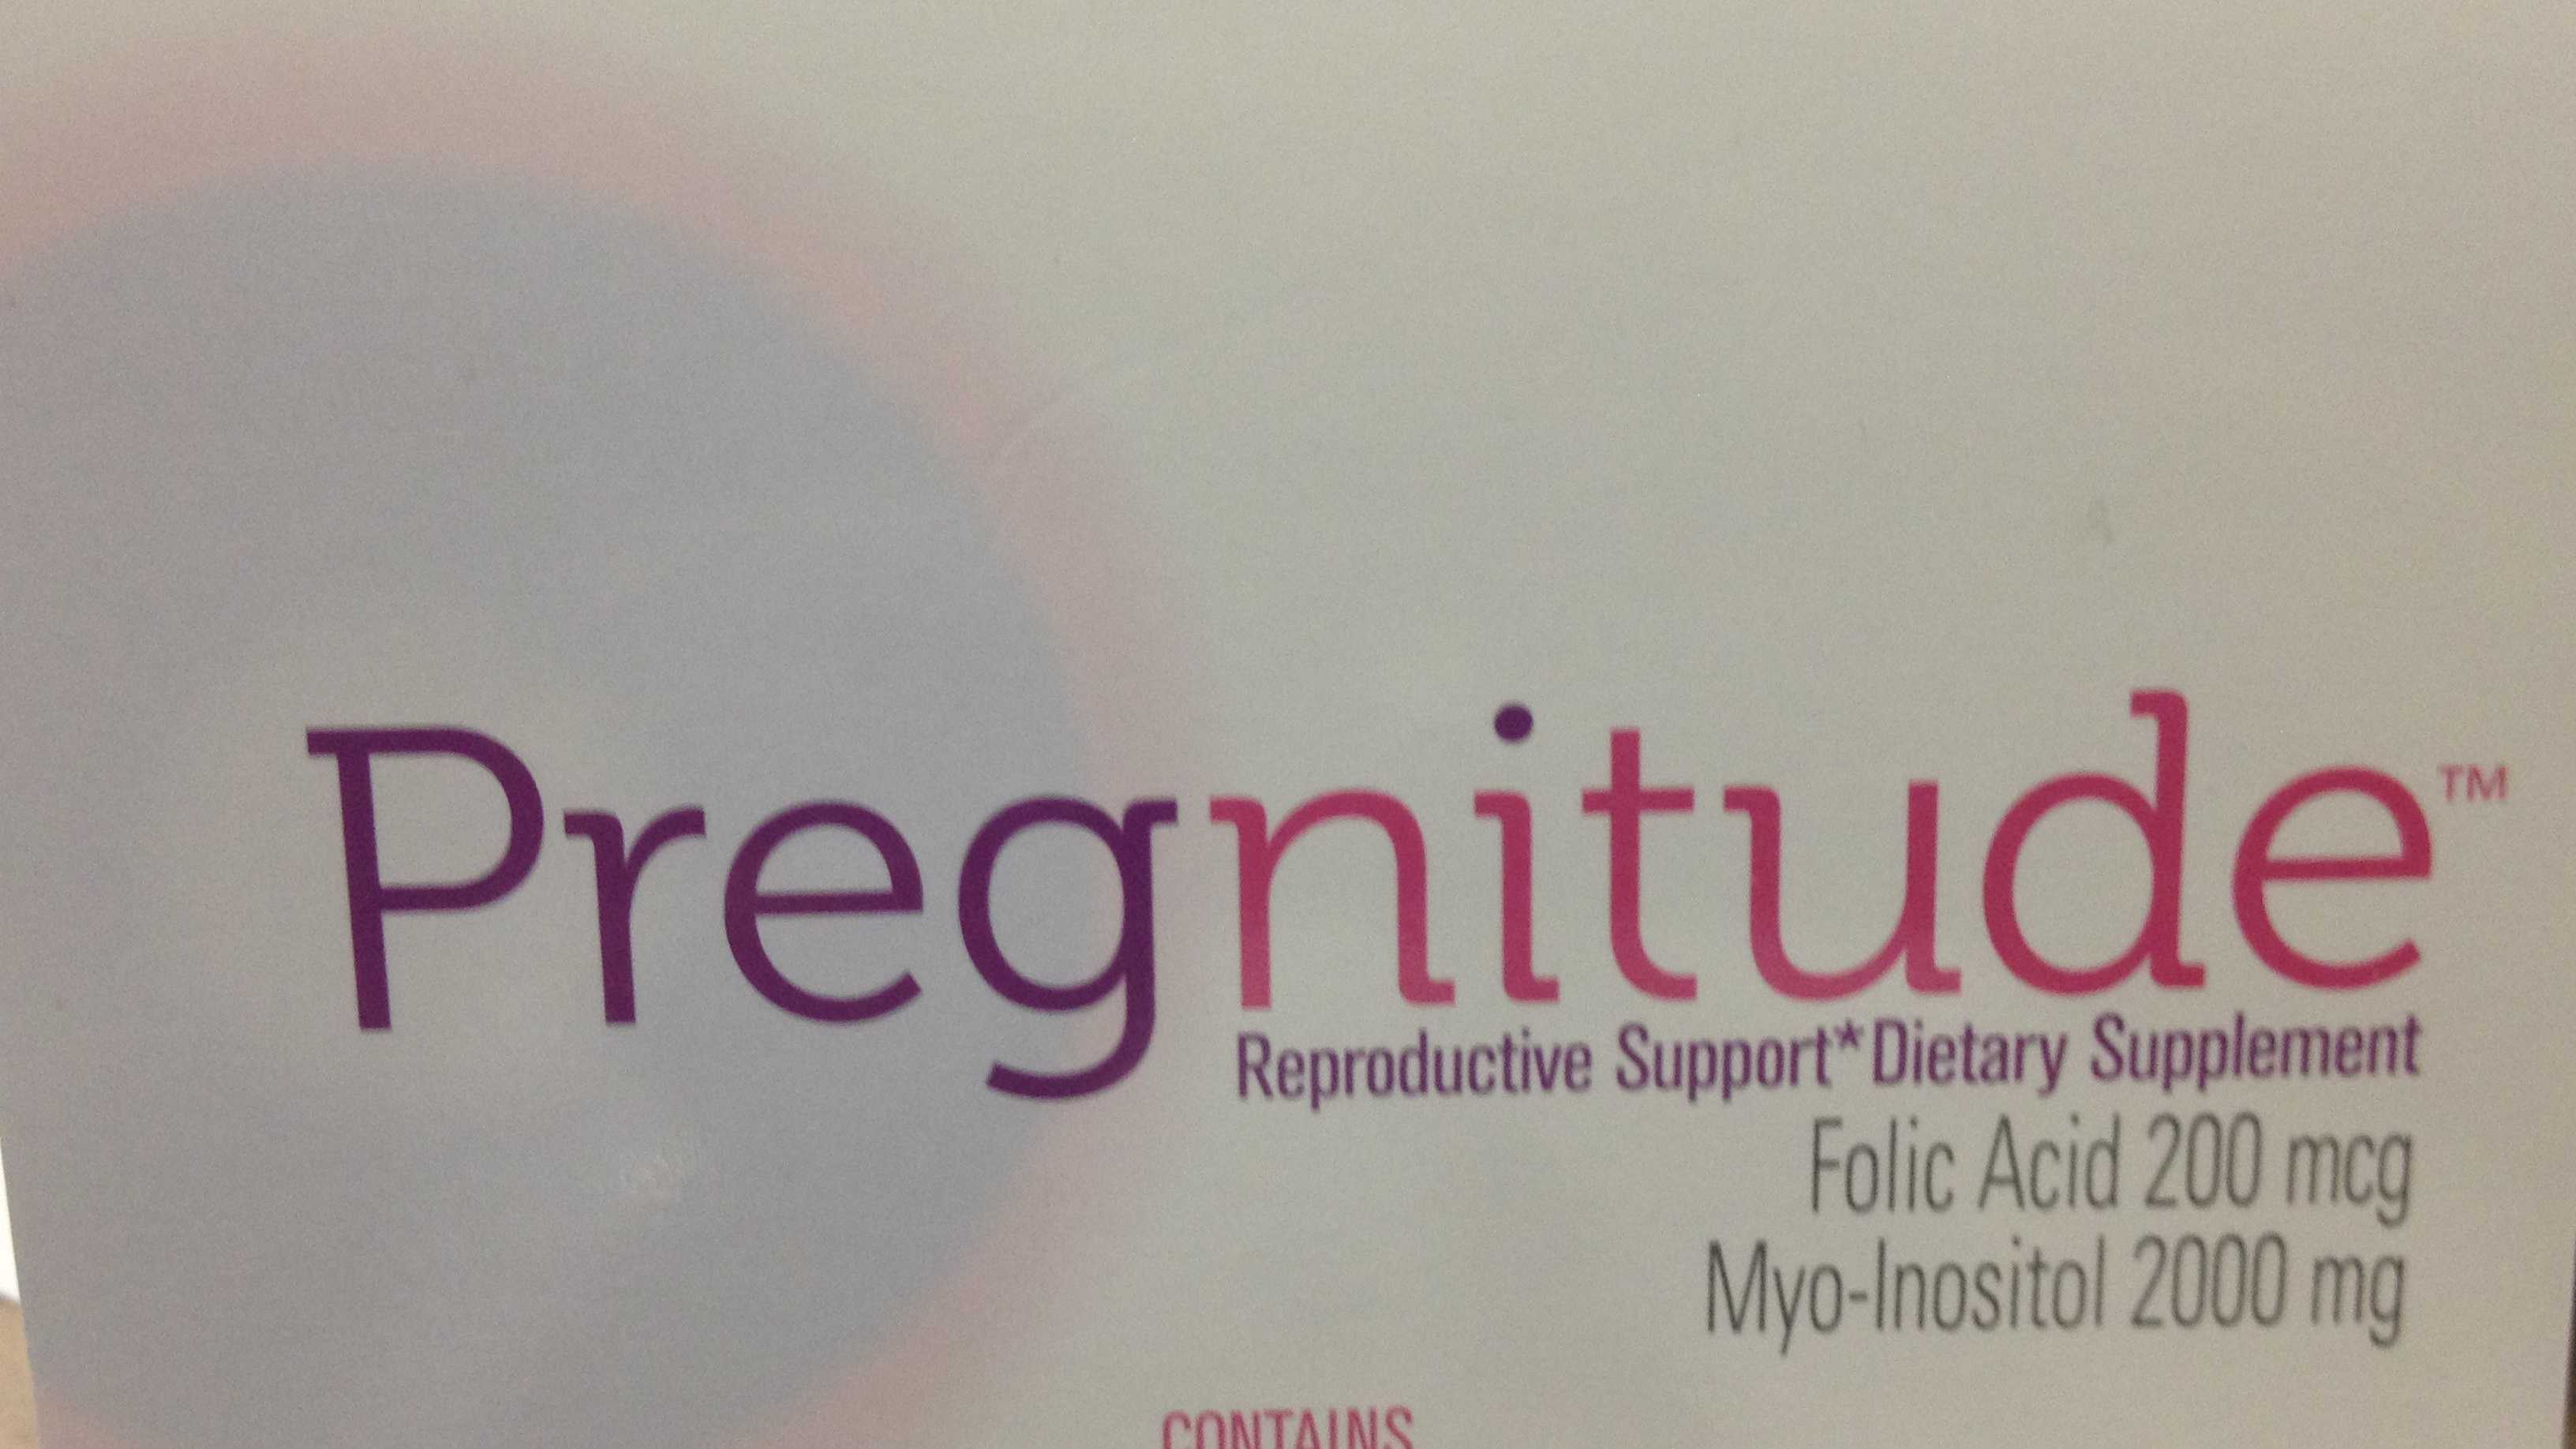 Pregnitude is recommended by Jupiter doctor for women with PCOS